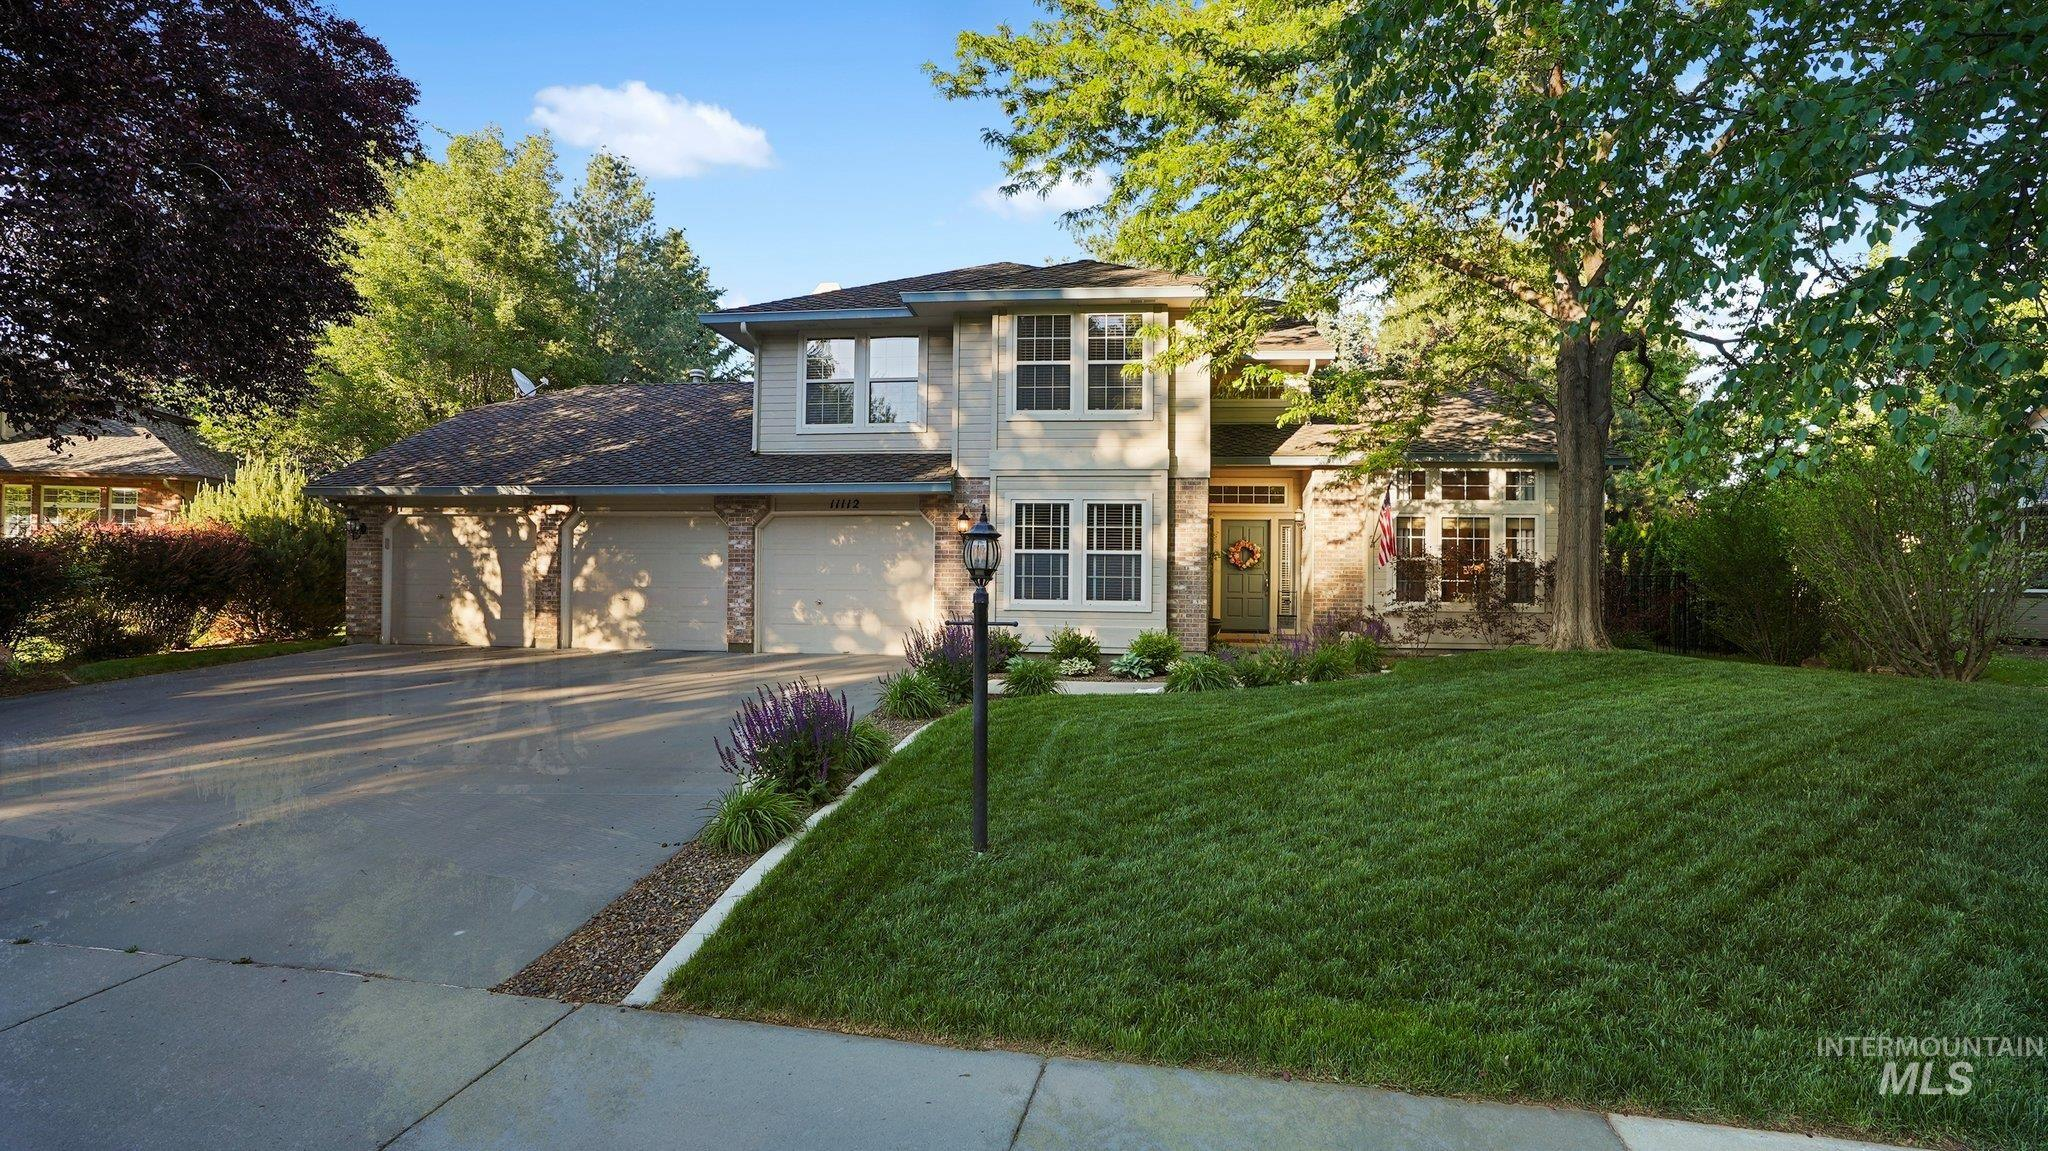 """Fabulous home located in the coveted Hickories Subdivision. The 17' grand entryway welcomes you to this large, move-in ready, 4 bed + office/ 5th  bed, 2.5 bath, well-built home with expansive real hardwood, loads of windows and natural light. The remodeled kitchen features granite and quartz countertops, full tile backsplash, walk-in pantry and large island. Premium SS appliances include a large double oven and 36"""" induction cooktop. Step out back to an amazing east-facing, private, park-like backyard with mature landscaping/trees, 90' hand-stacked sandstone wall, blocking, concrete edging, huge redwood deck and fire pit all make for a beautiful and excellent outdoor entertaining space on .29 acres. Built-in cabinets, crown molding throughout, central vac, floor to ceiling windows and 10' formal/flex living space. Large, 900+ sqft 3-car garage with insulated walls/ceiling/doors, epoxy floors, 220v, whole house surge protector, 30 amp RV outlet and 75 gal. water heater. 50-year presidential roof. - Nick Rice, Voice: 208-870-3171, RE/MAX Advisors, Main: 208-375-9700, http://www.nicklrice.com"""